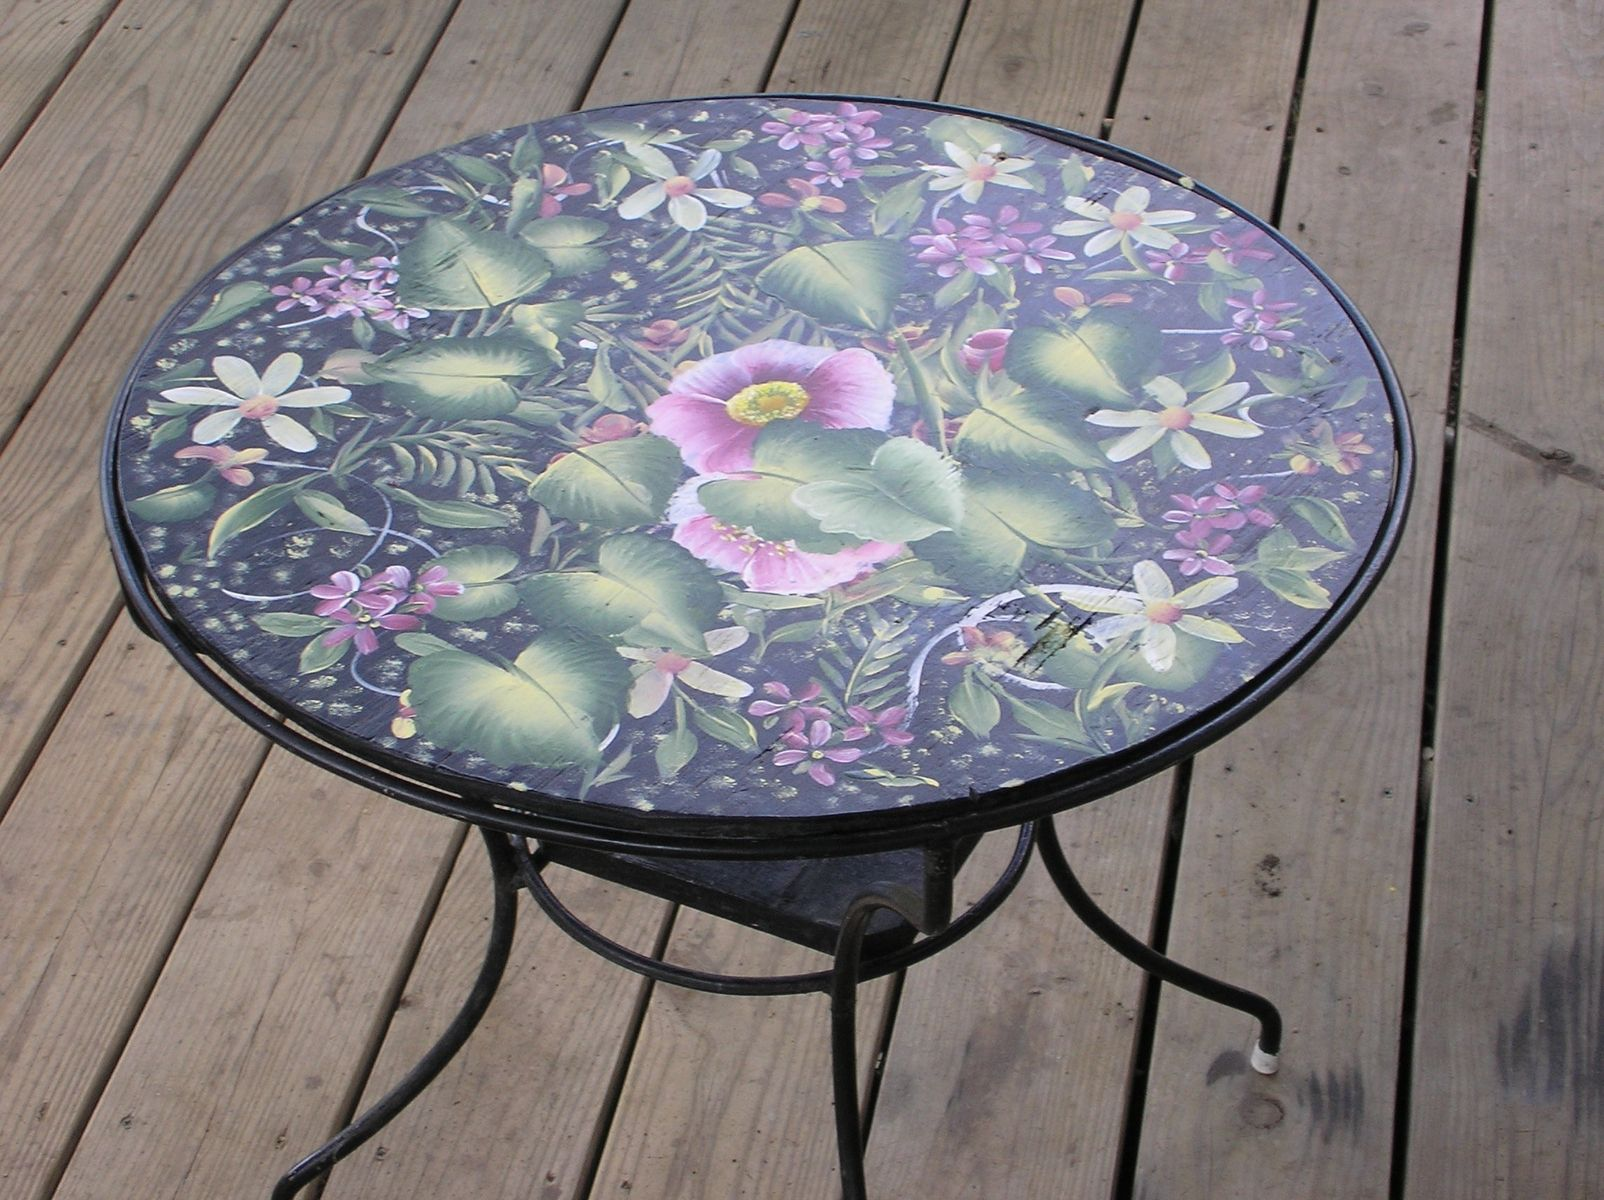 Hand Crafted Round Table For Deck Black With Flowers By I